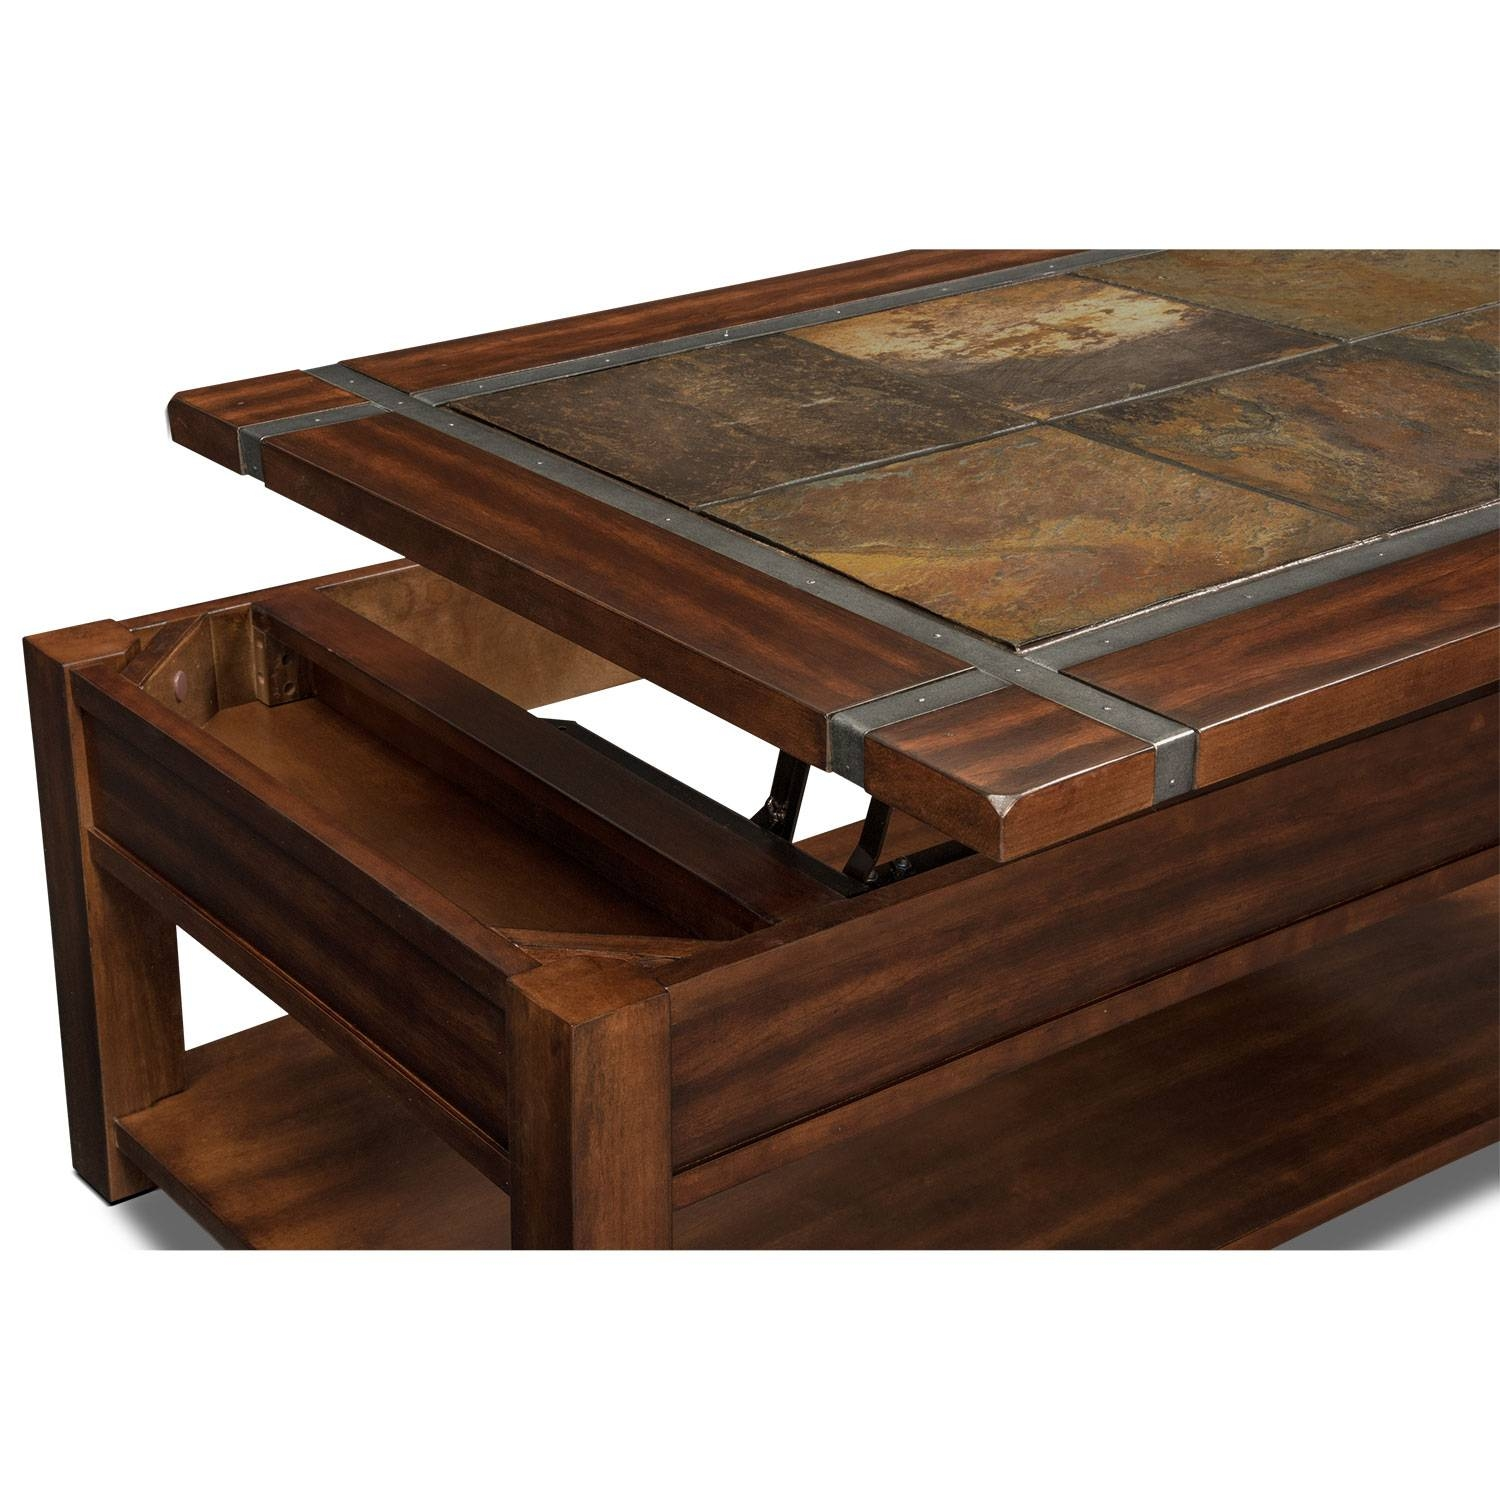 Lift Top Coffee Table Value City Furniture | Coffee Tables Decoration throughout Lift Top Coffee Table Furniture (Image 16 of 30)